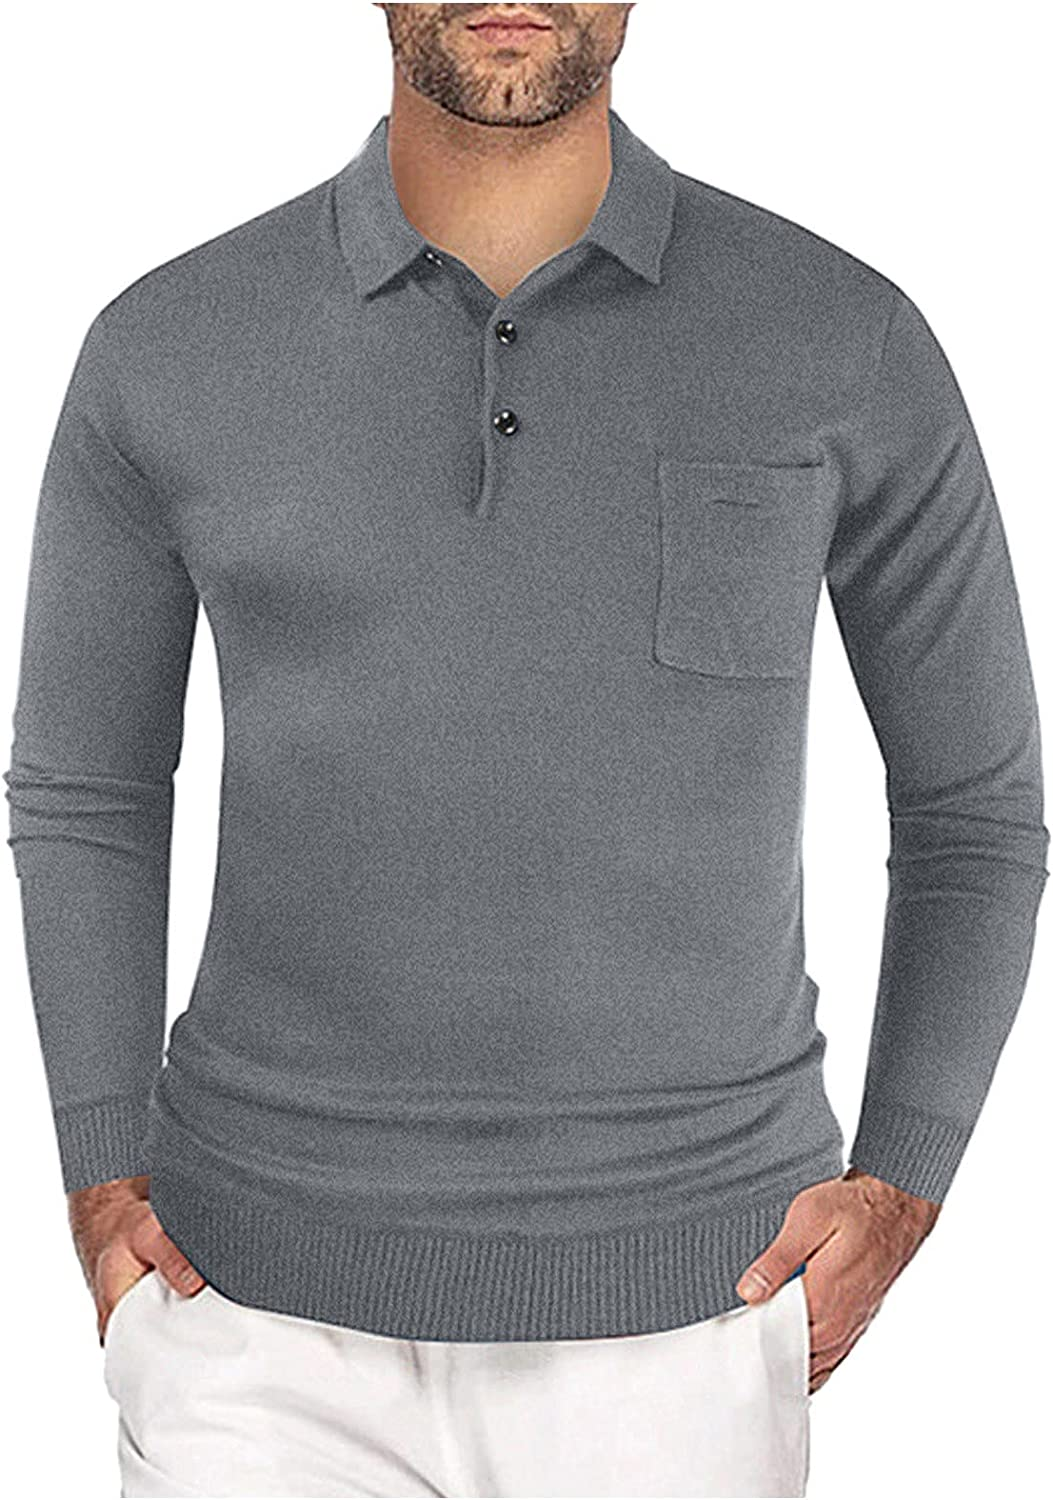 UBST Knit Shirts for Mens, Front Placket Button Lapel Collar Polo Shirt Long Sleeve Business Casual Fall Wool Tops